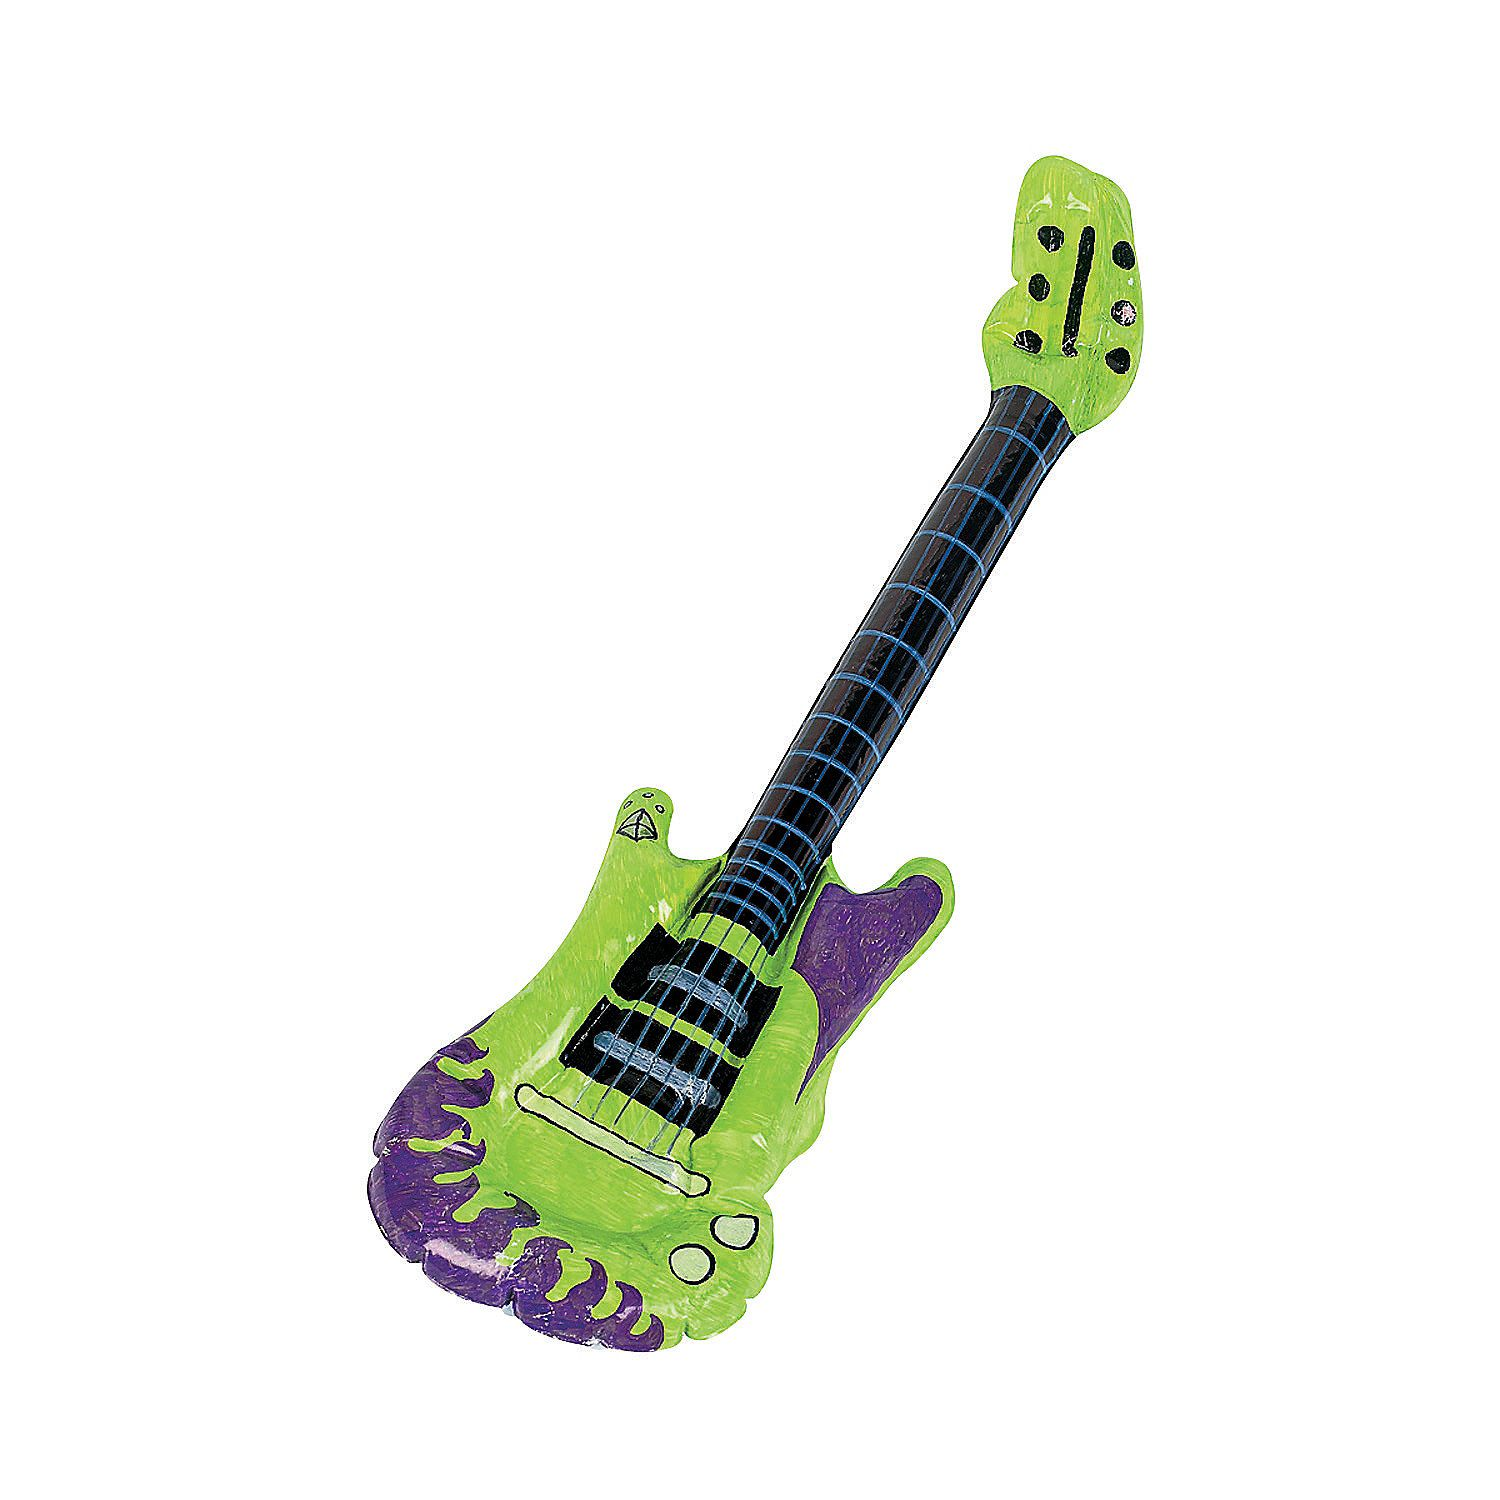 Inflatable Toy Guitar